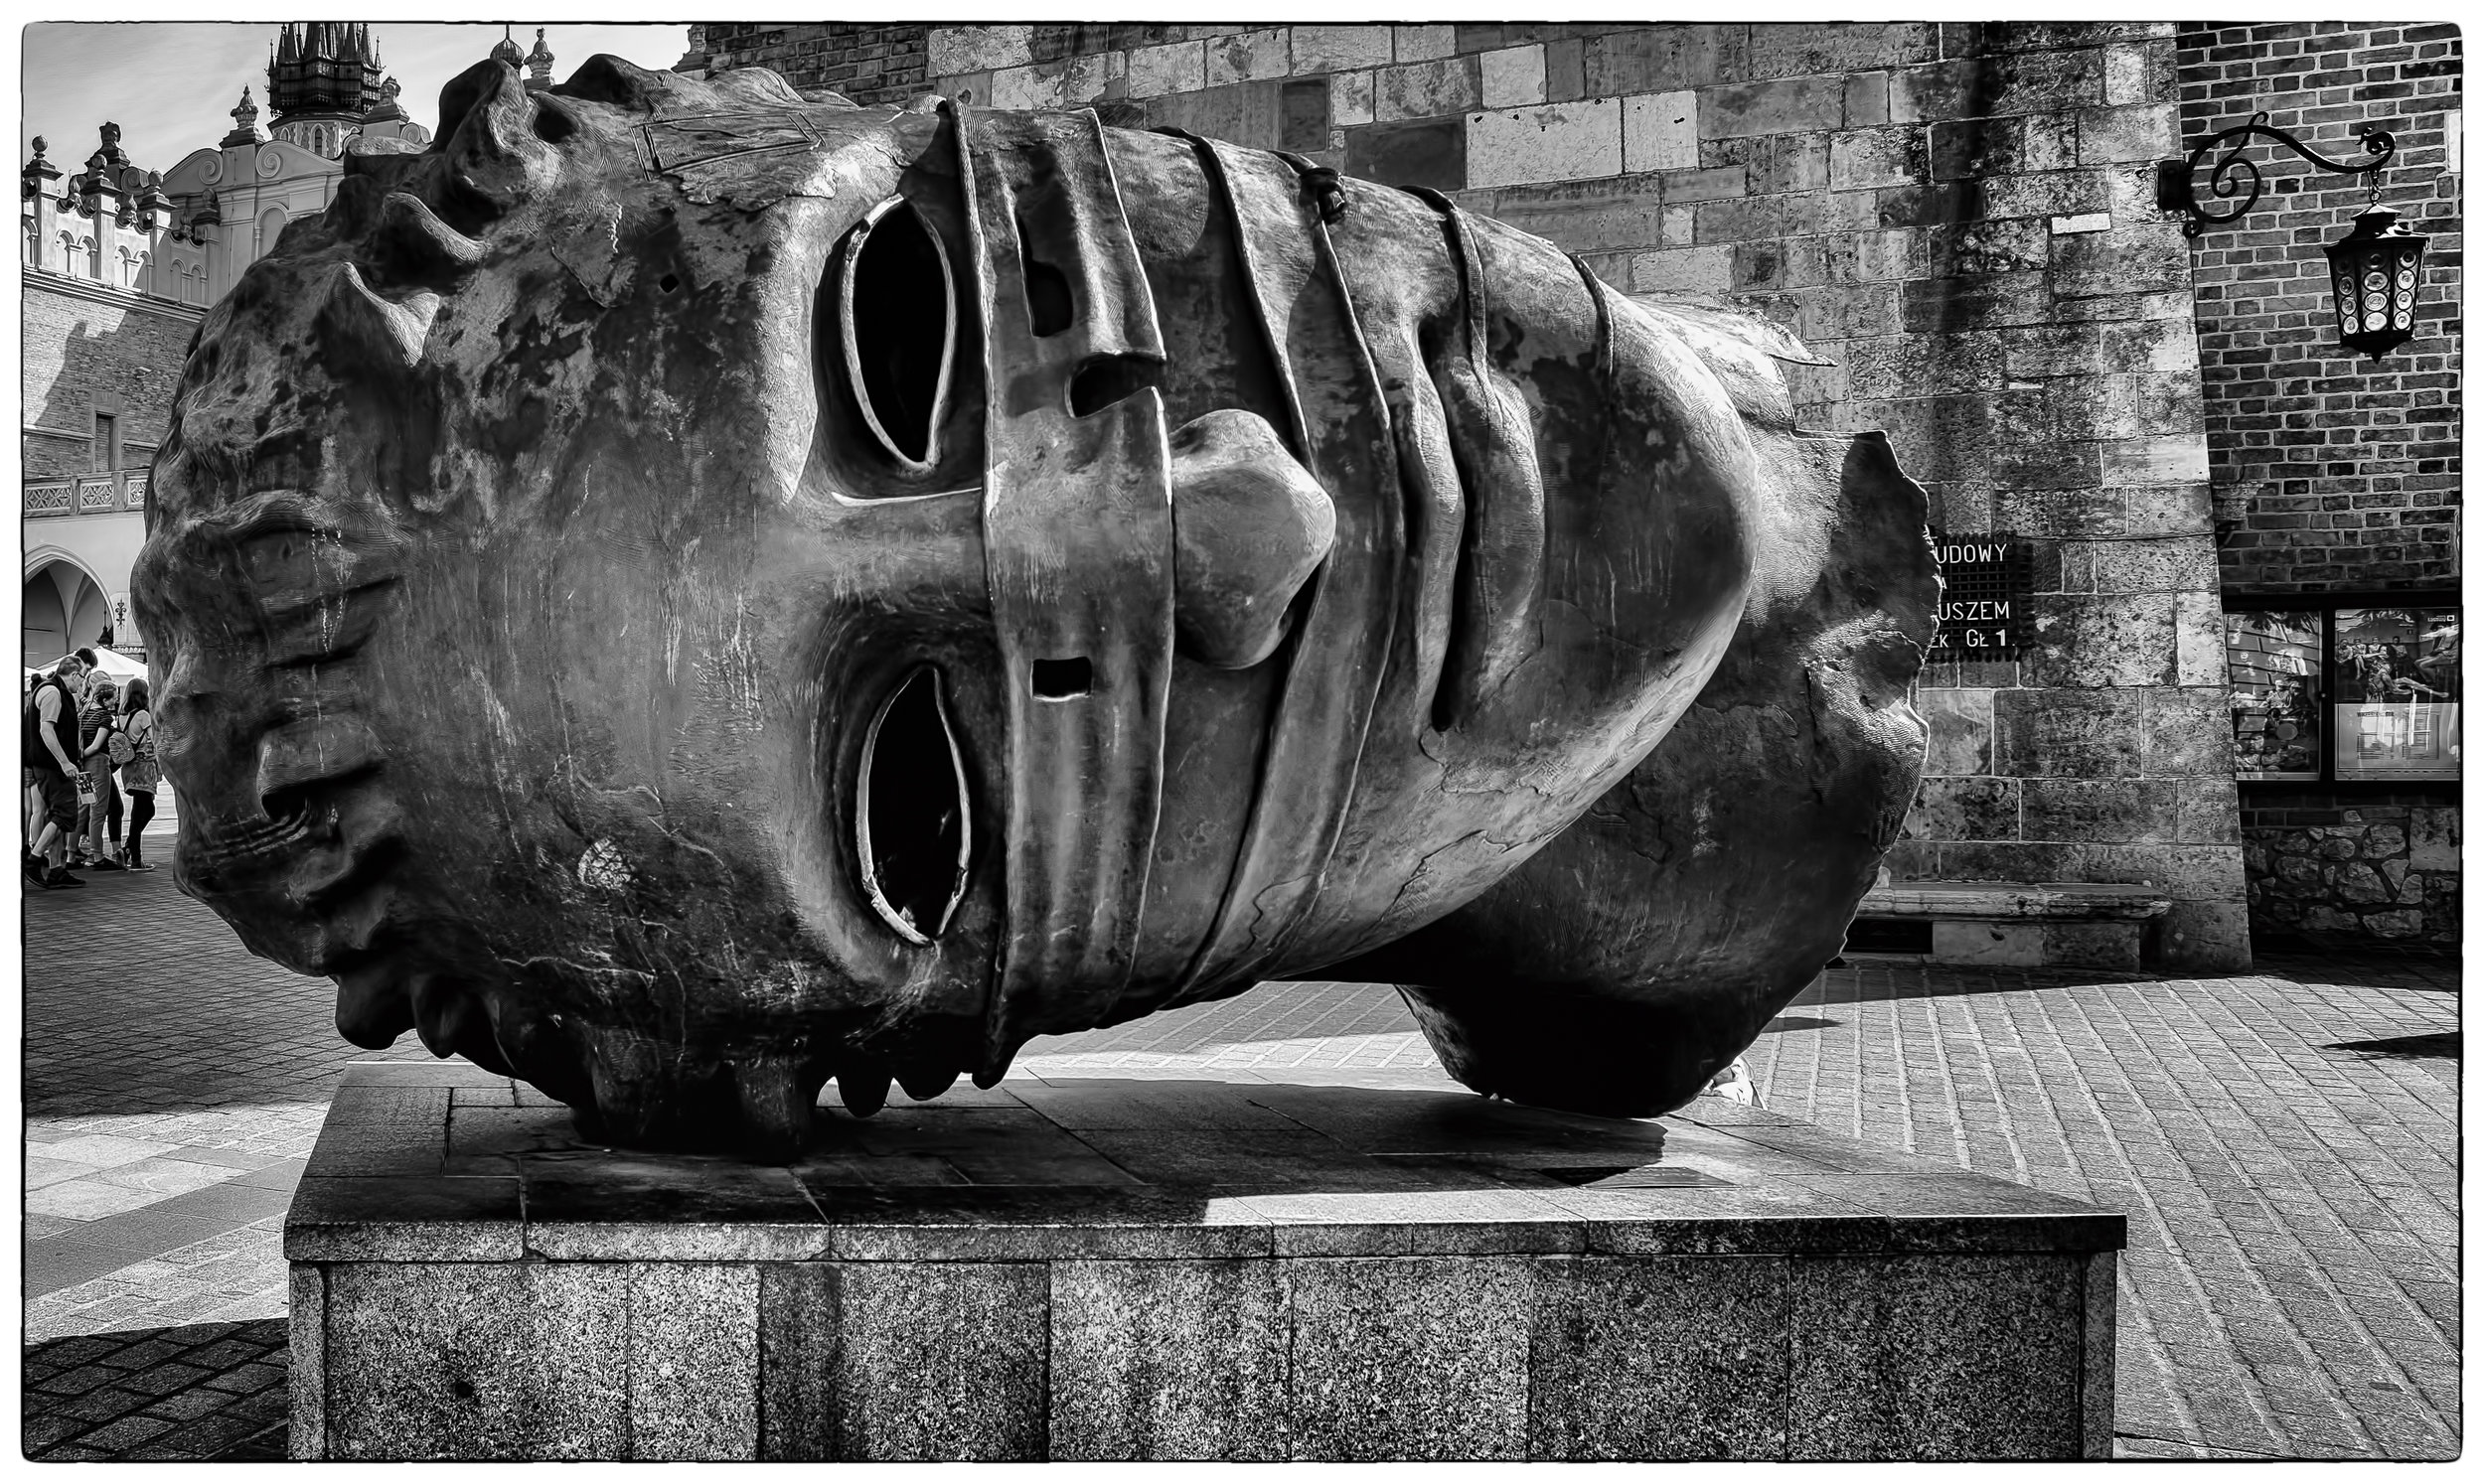 """Eros Bound - Fujifilm X 100T, 1/125 @ f/8.0, ISO200, 23mm. Photographed on a recent tour of central Europe. This sculpture can be found in the town square in Krakow, Poland. See the poem """"The Words Were There"""" in the Poetry Section."""